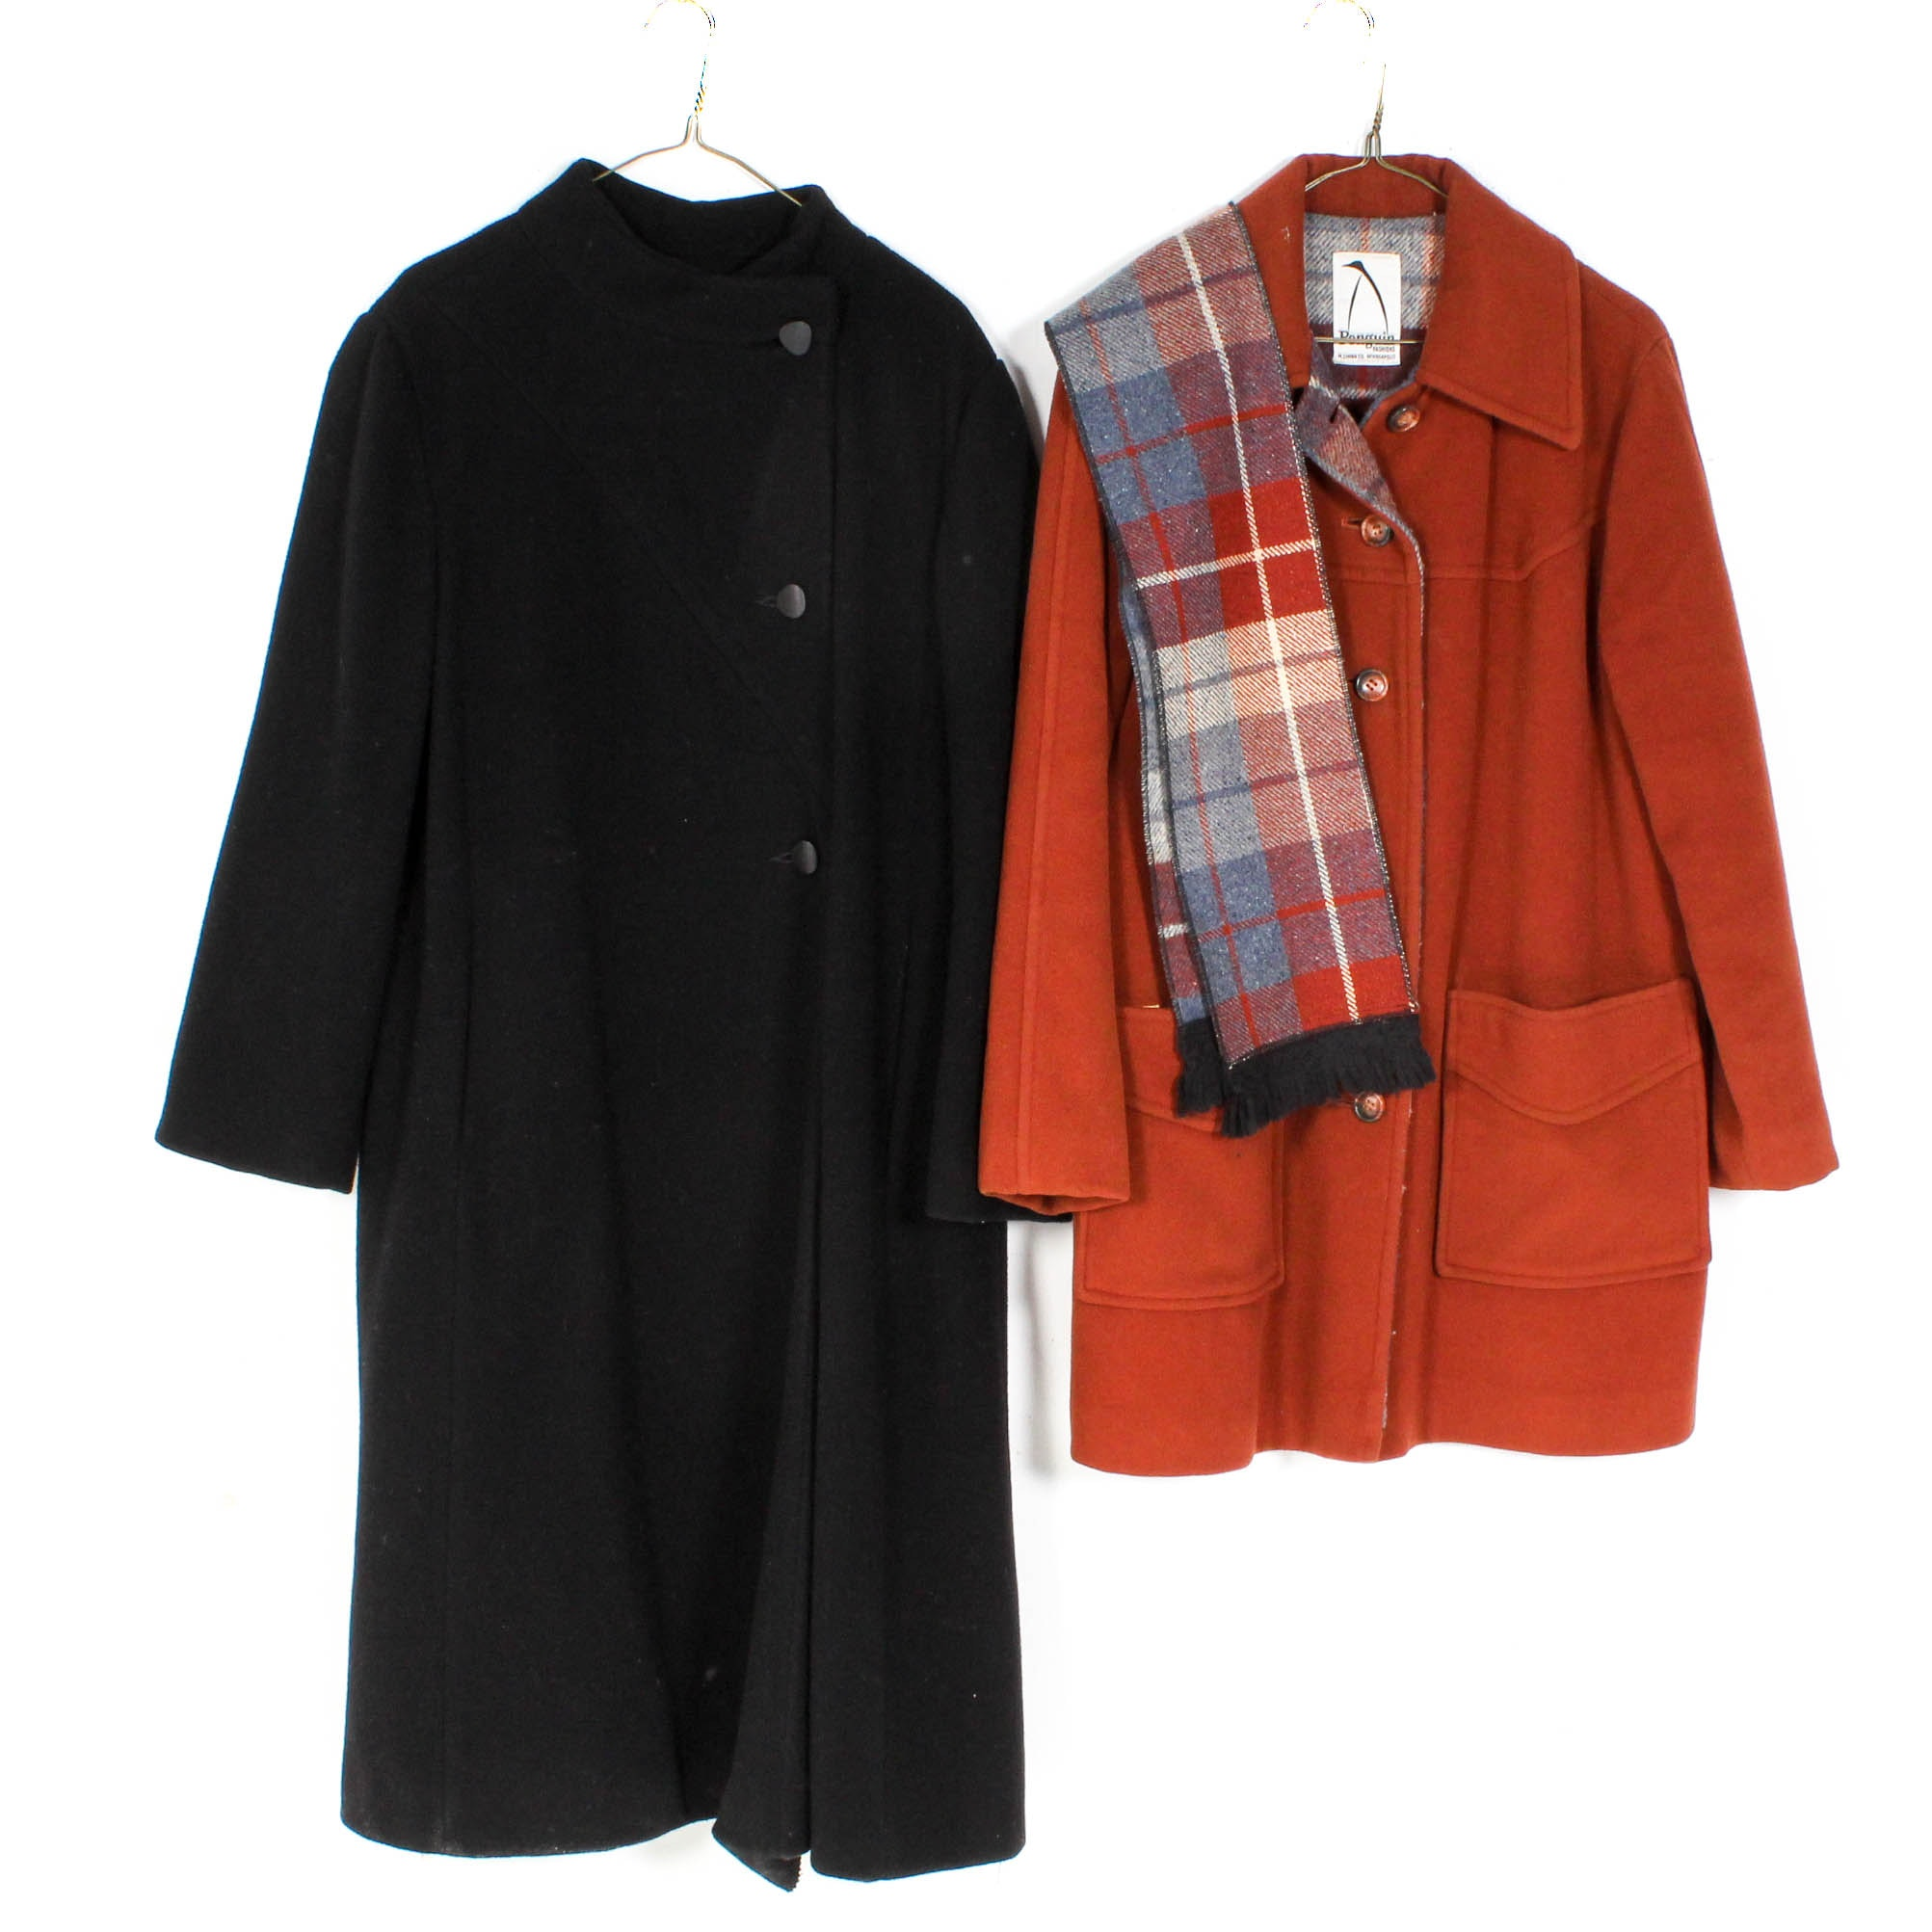 Women's Vintage Wool Coats and Scarf